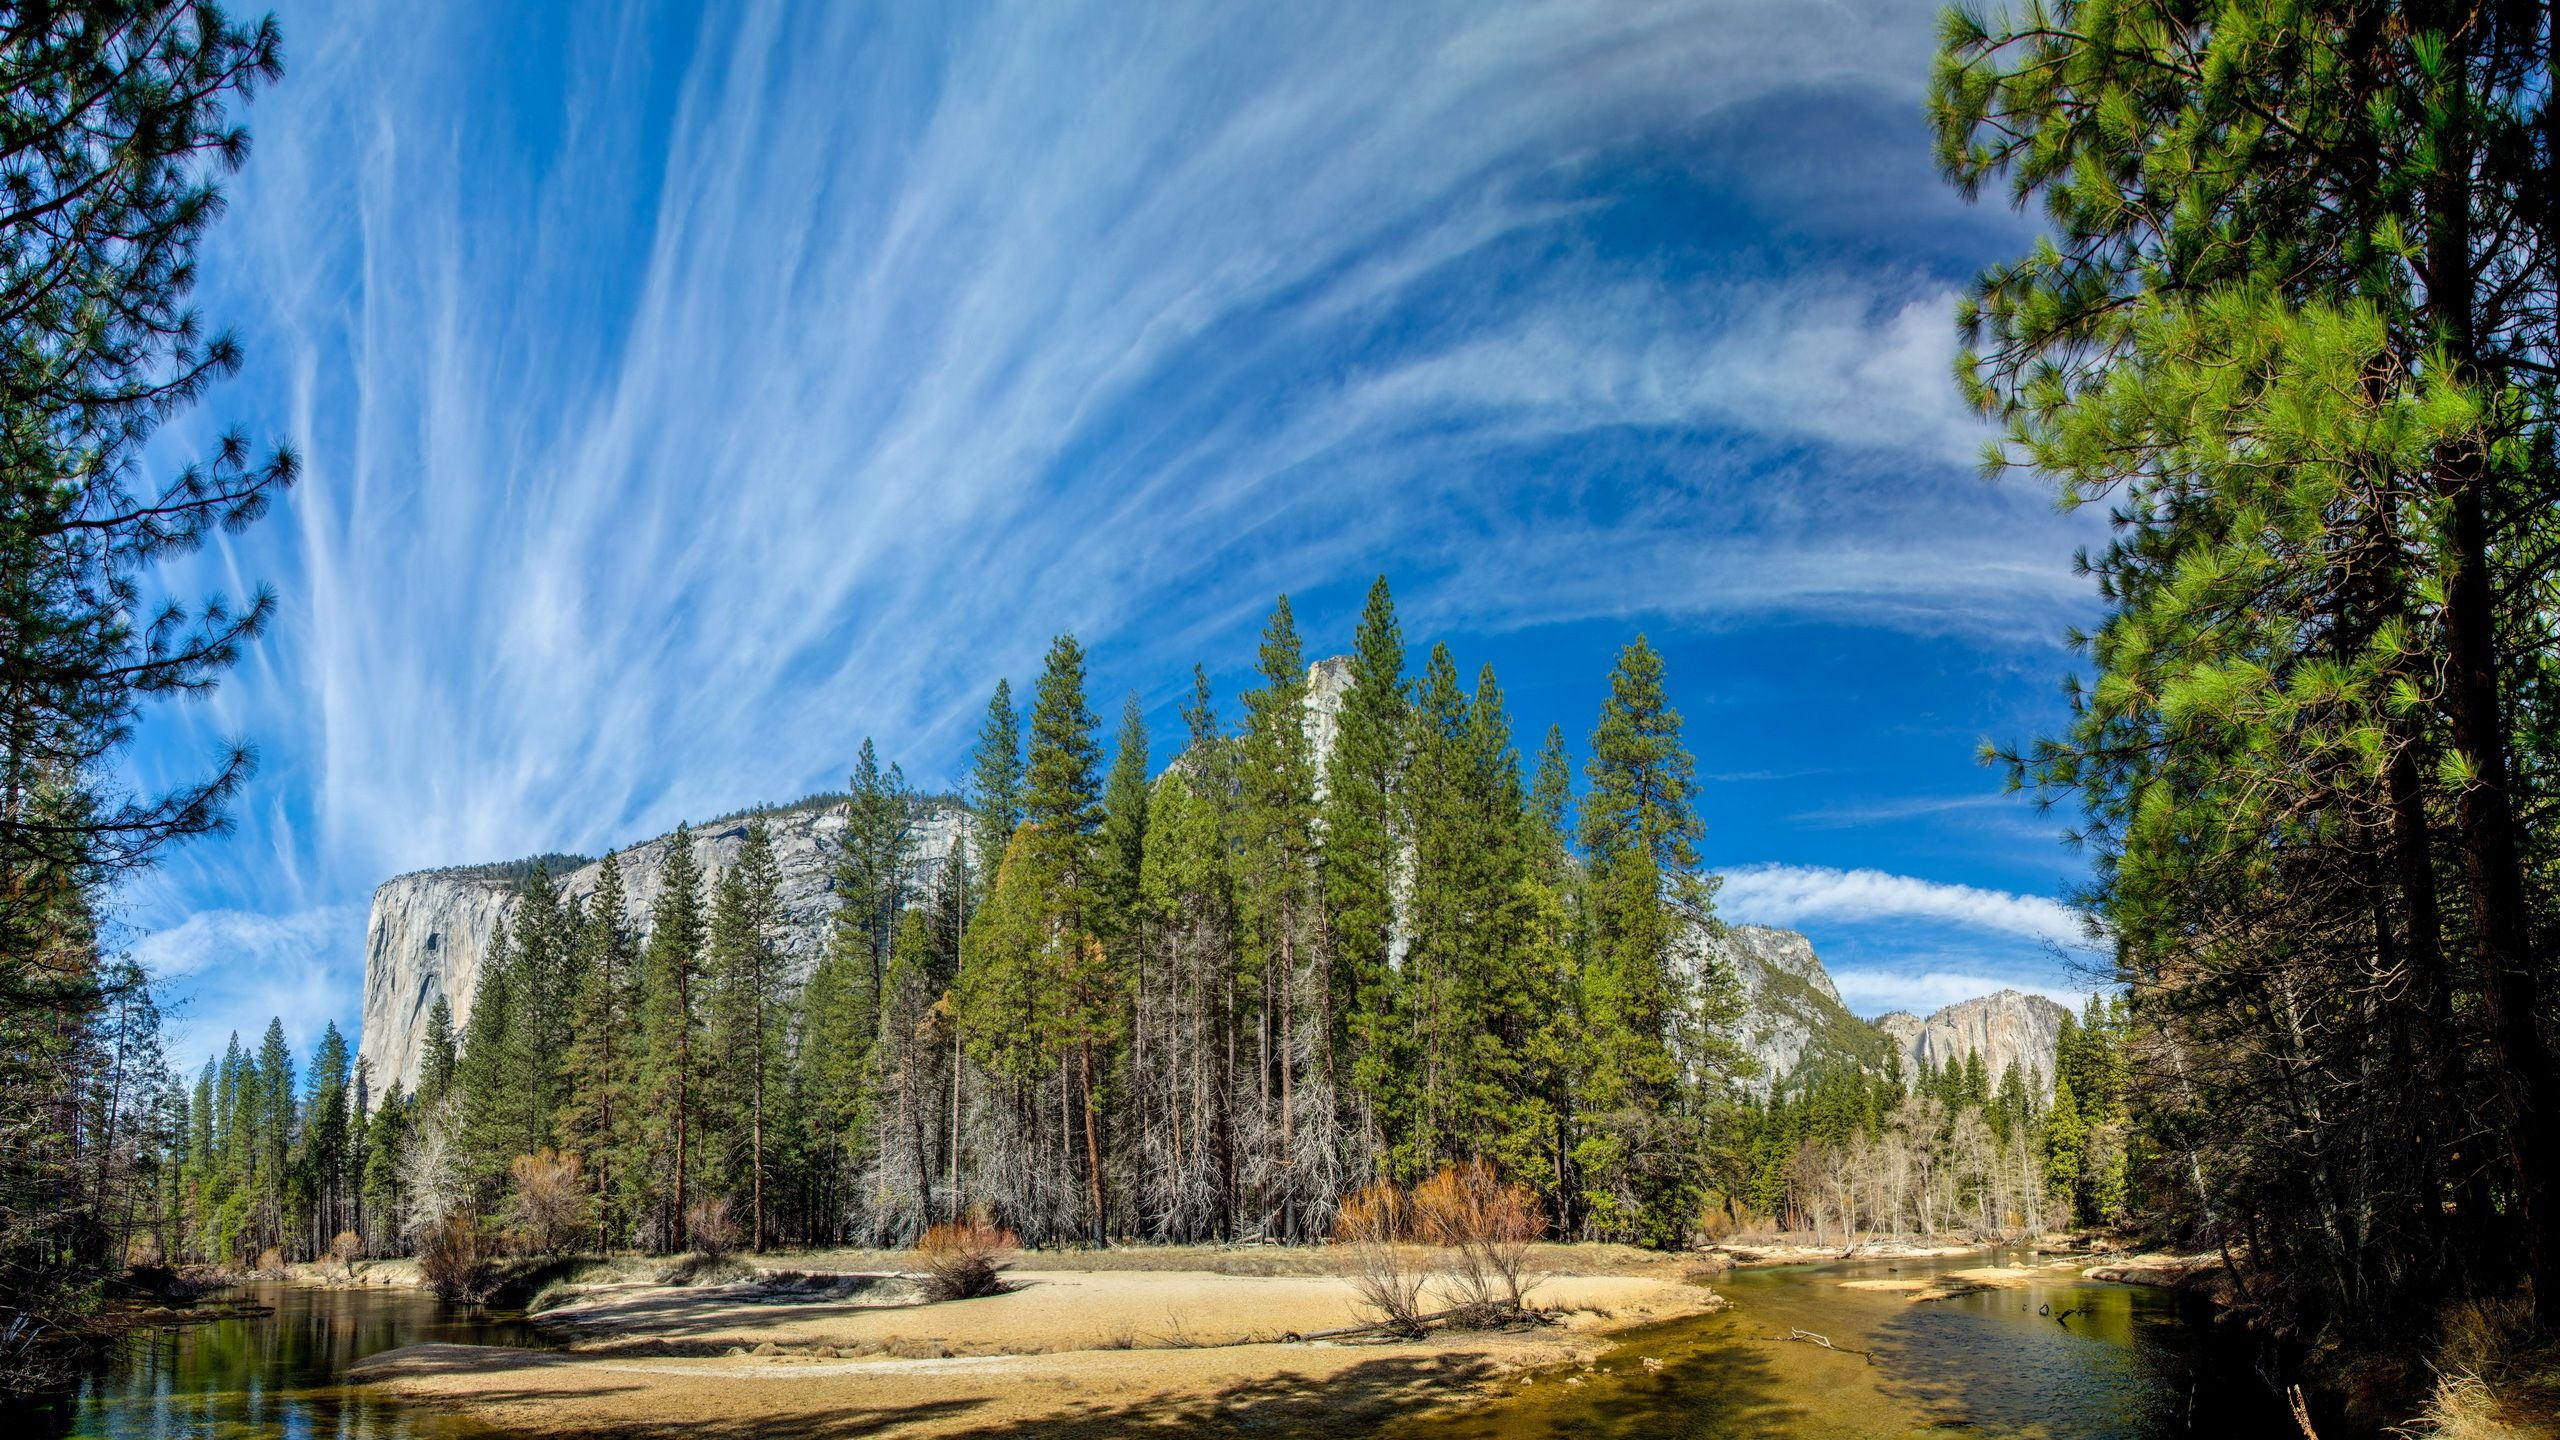 Download Wallpaper 2560x1440 Yosemite national park